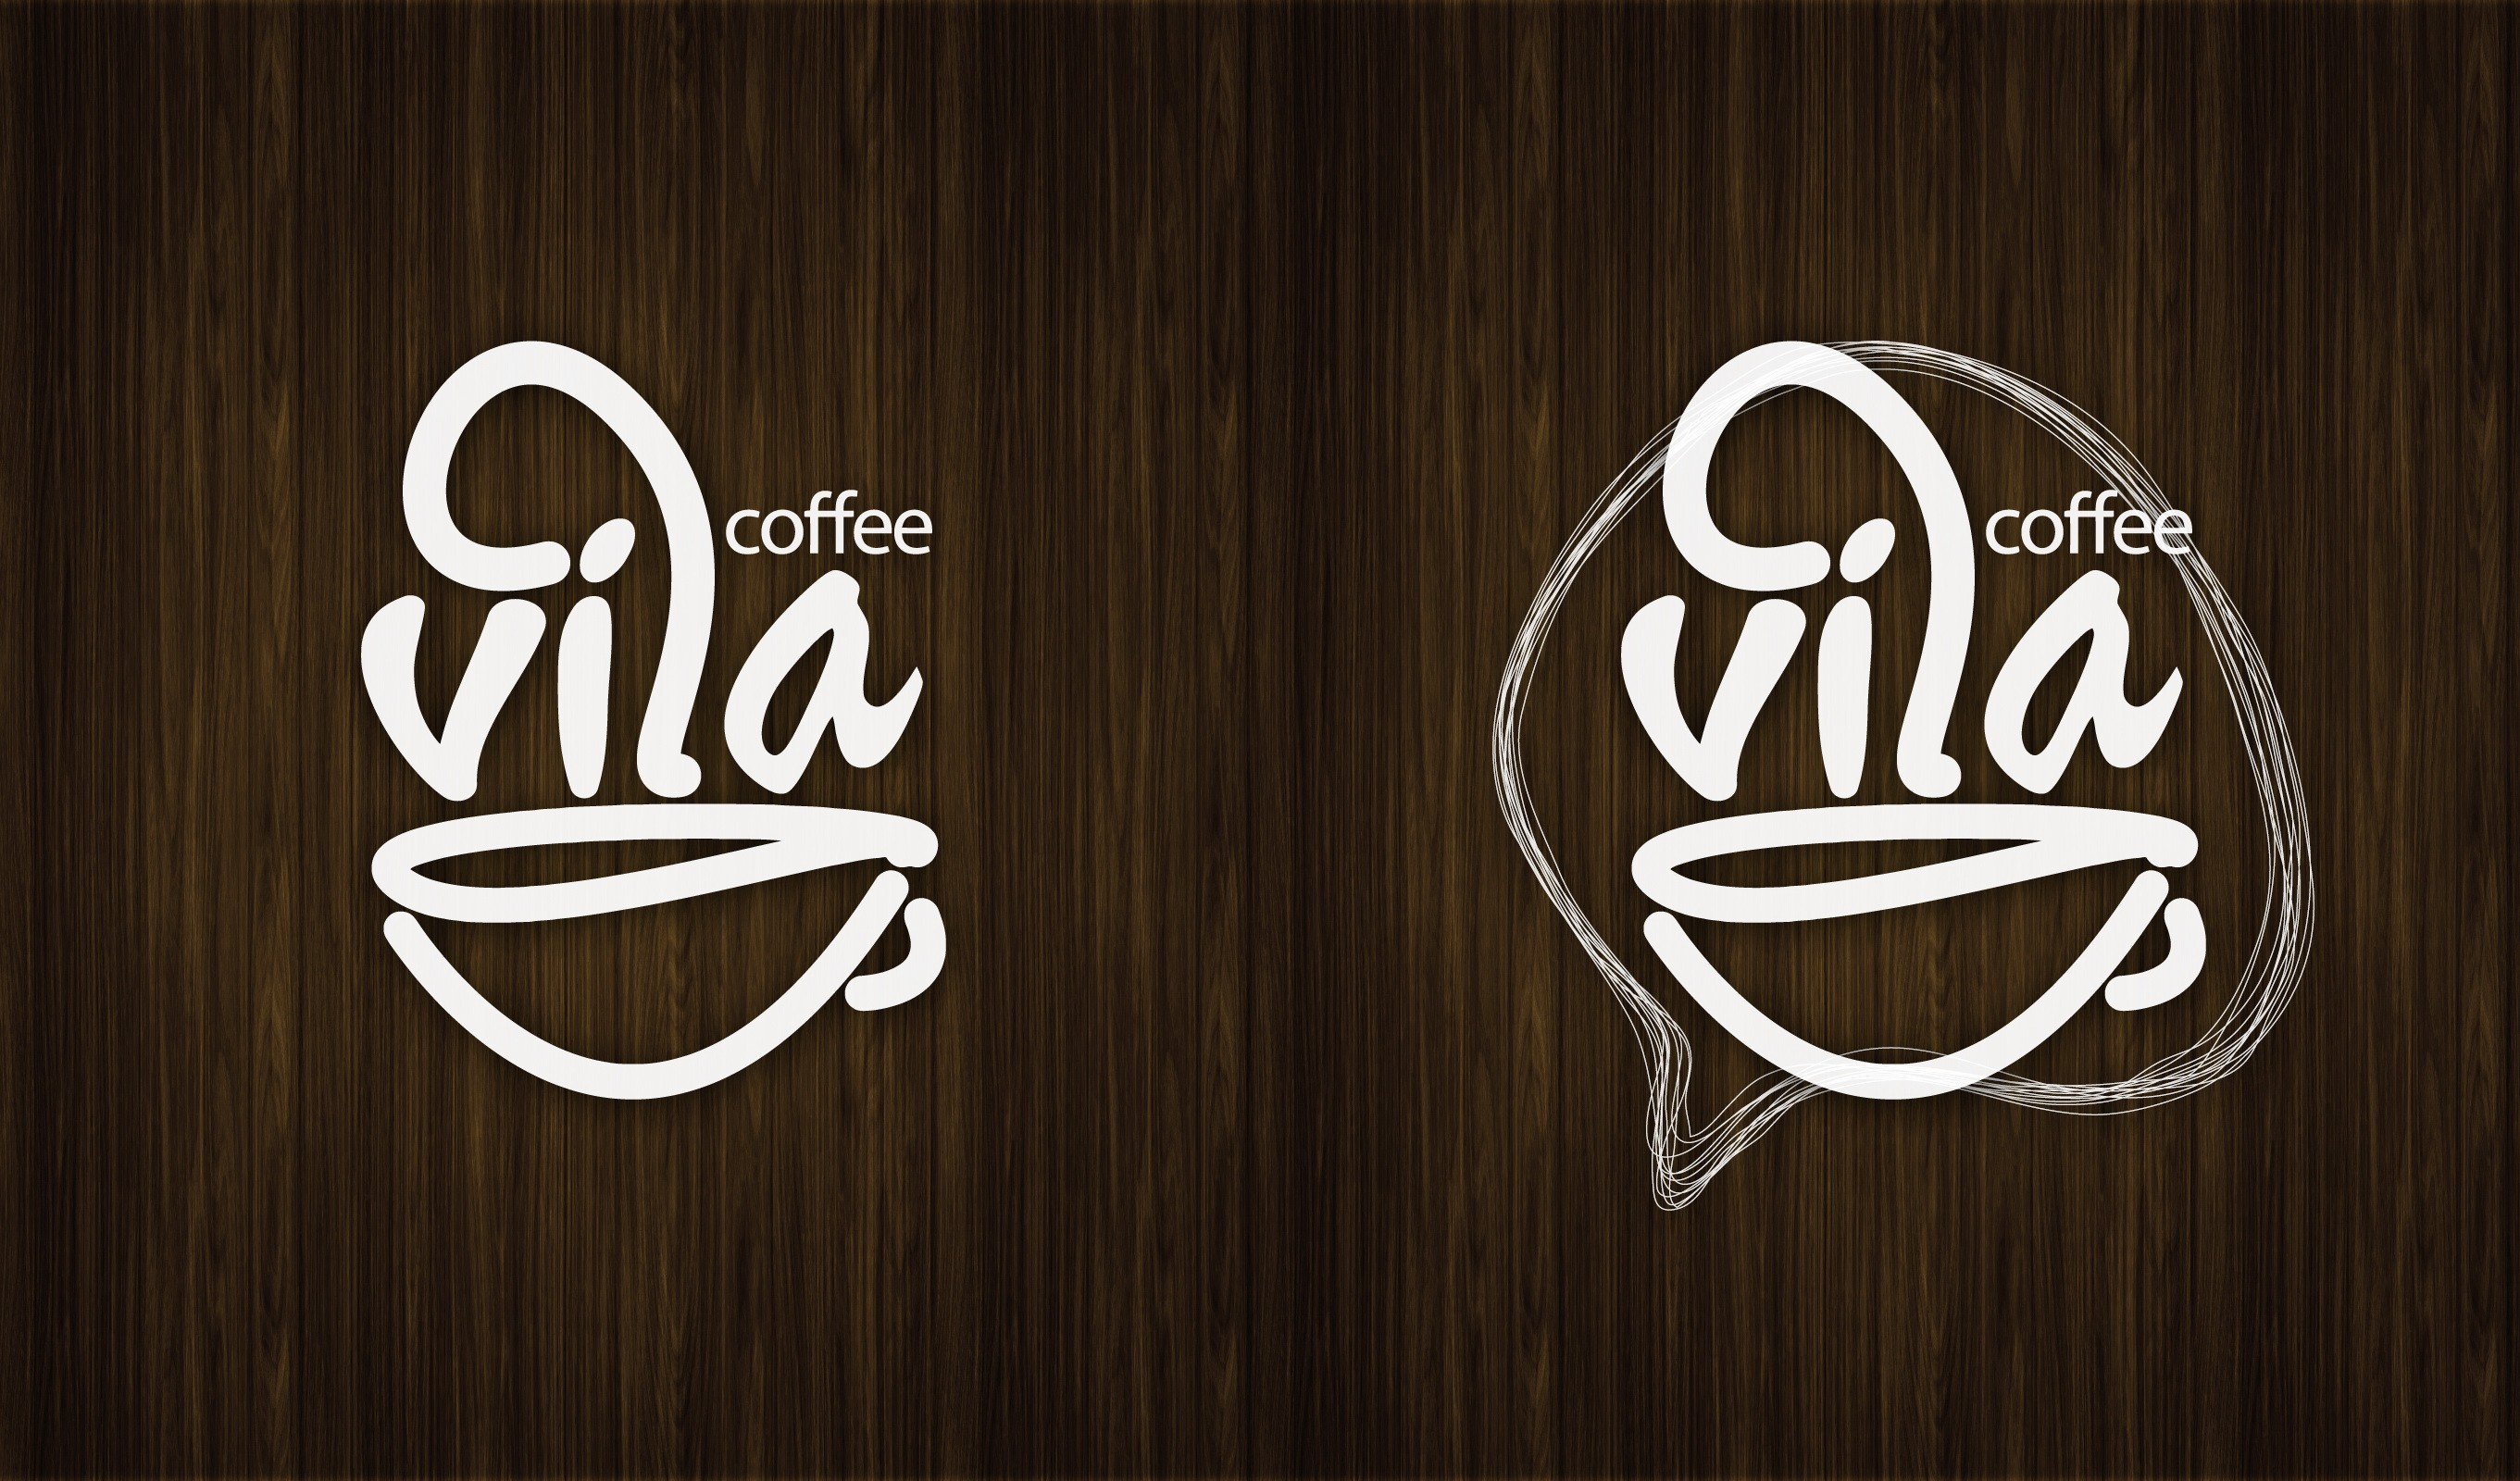 Coffee Vila